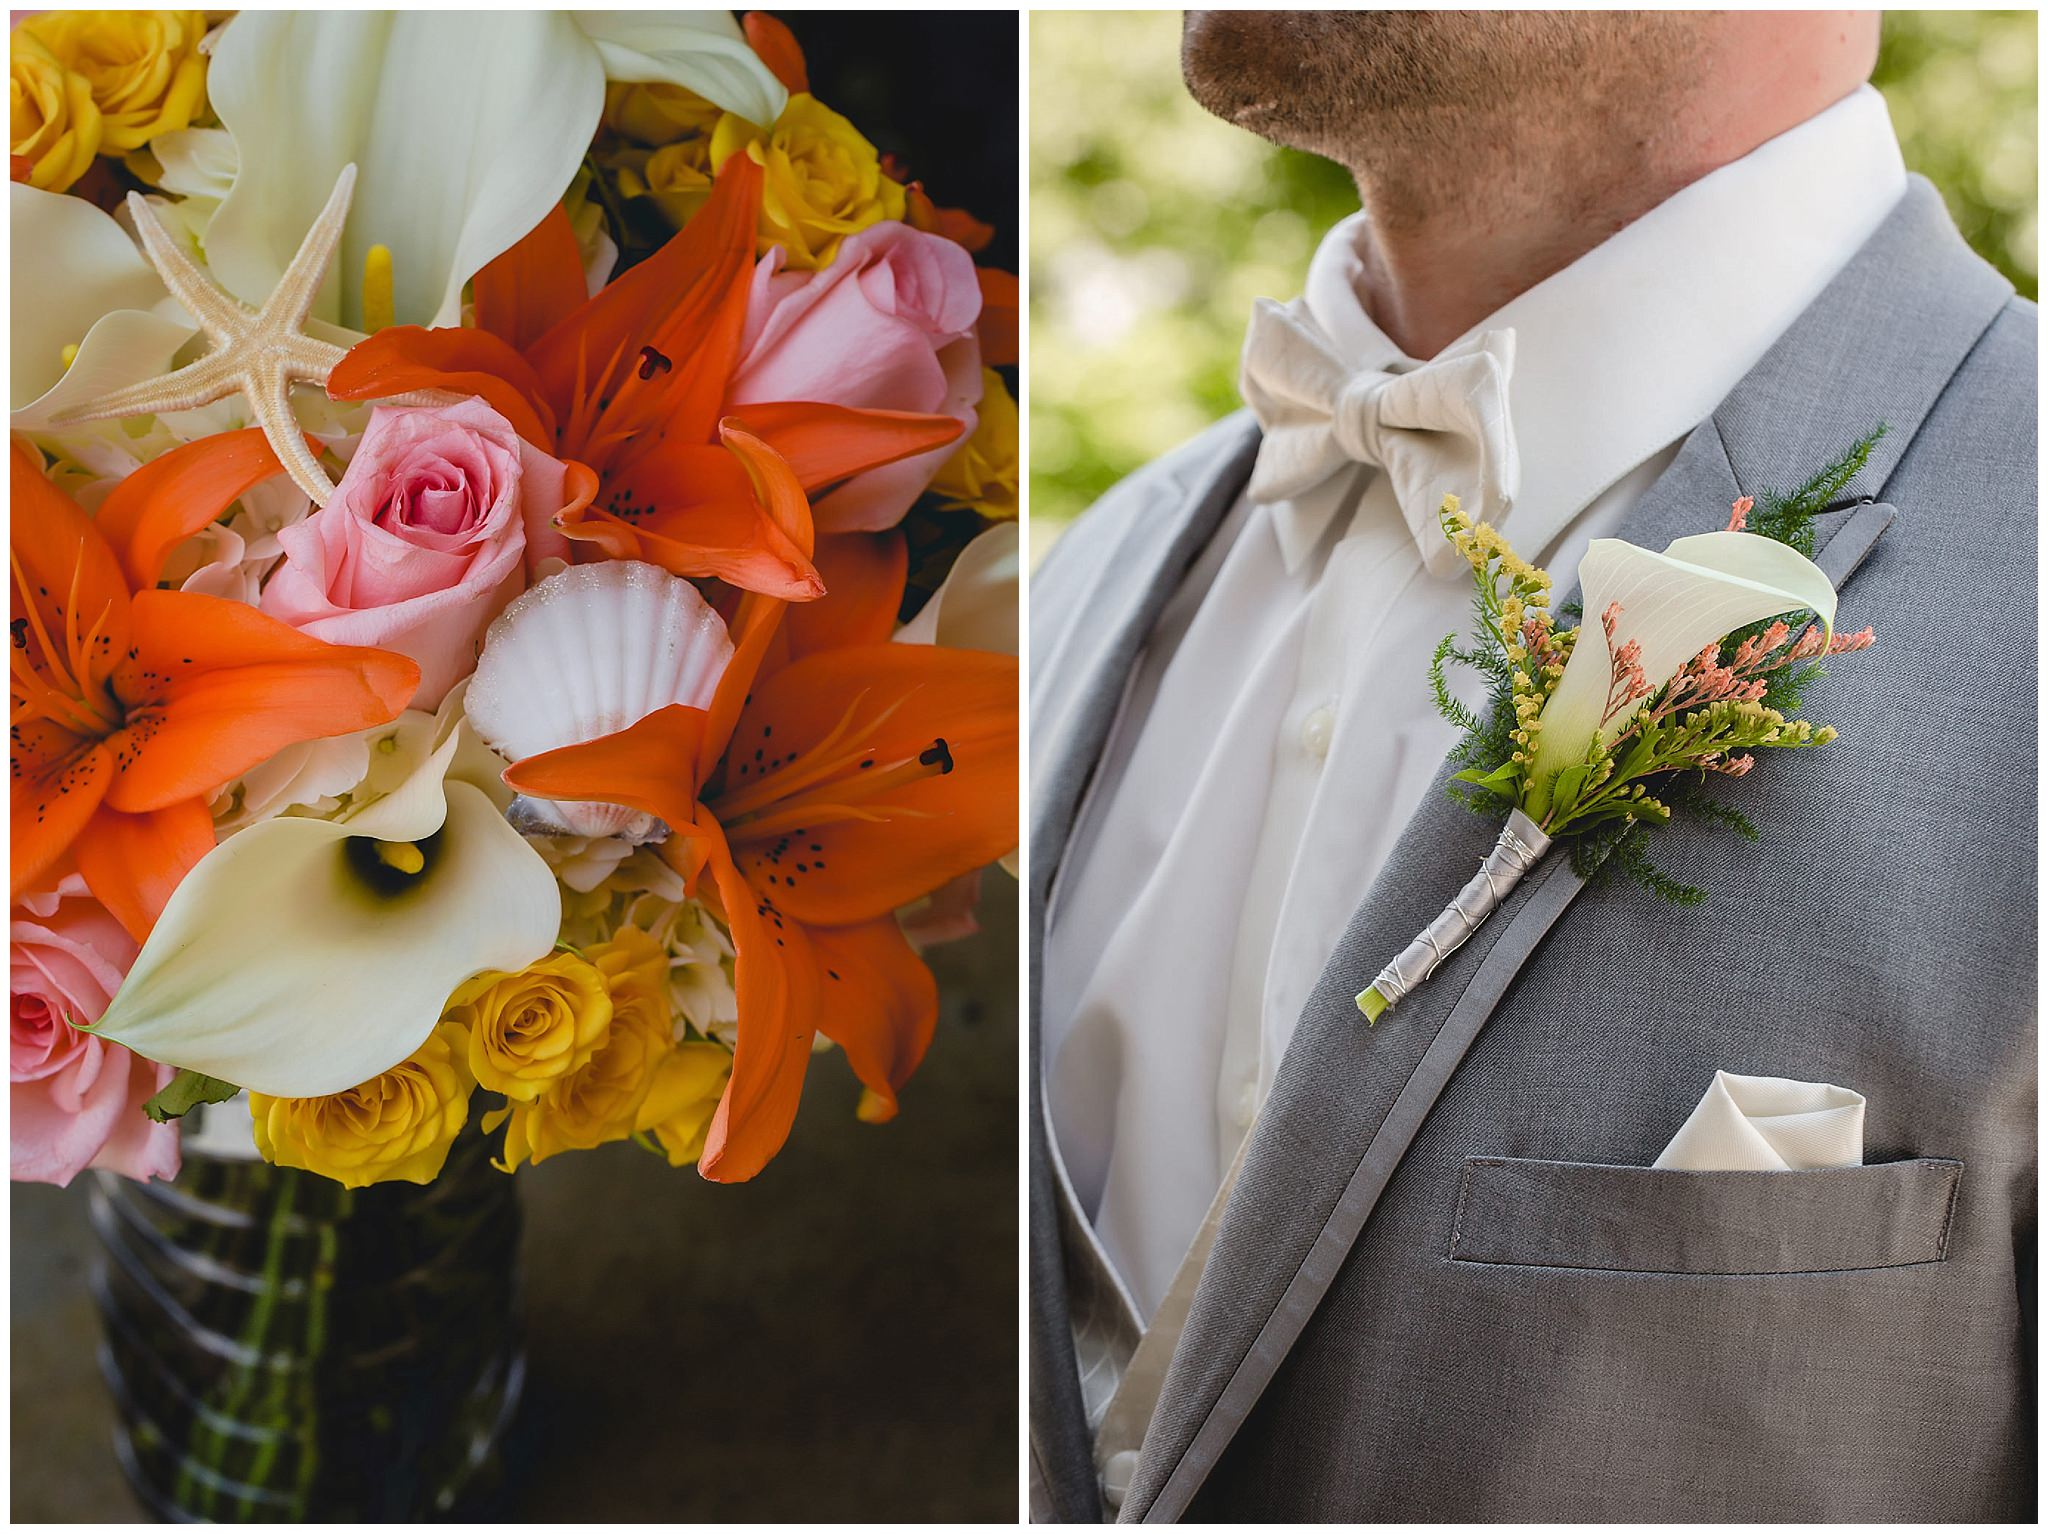 Bride's bouquet and groom's boutonniere